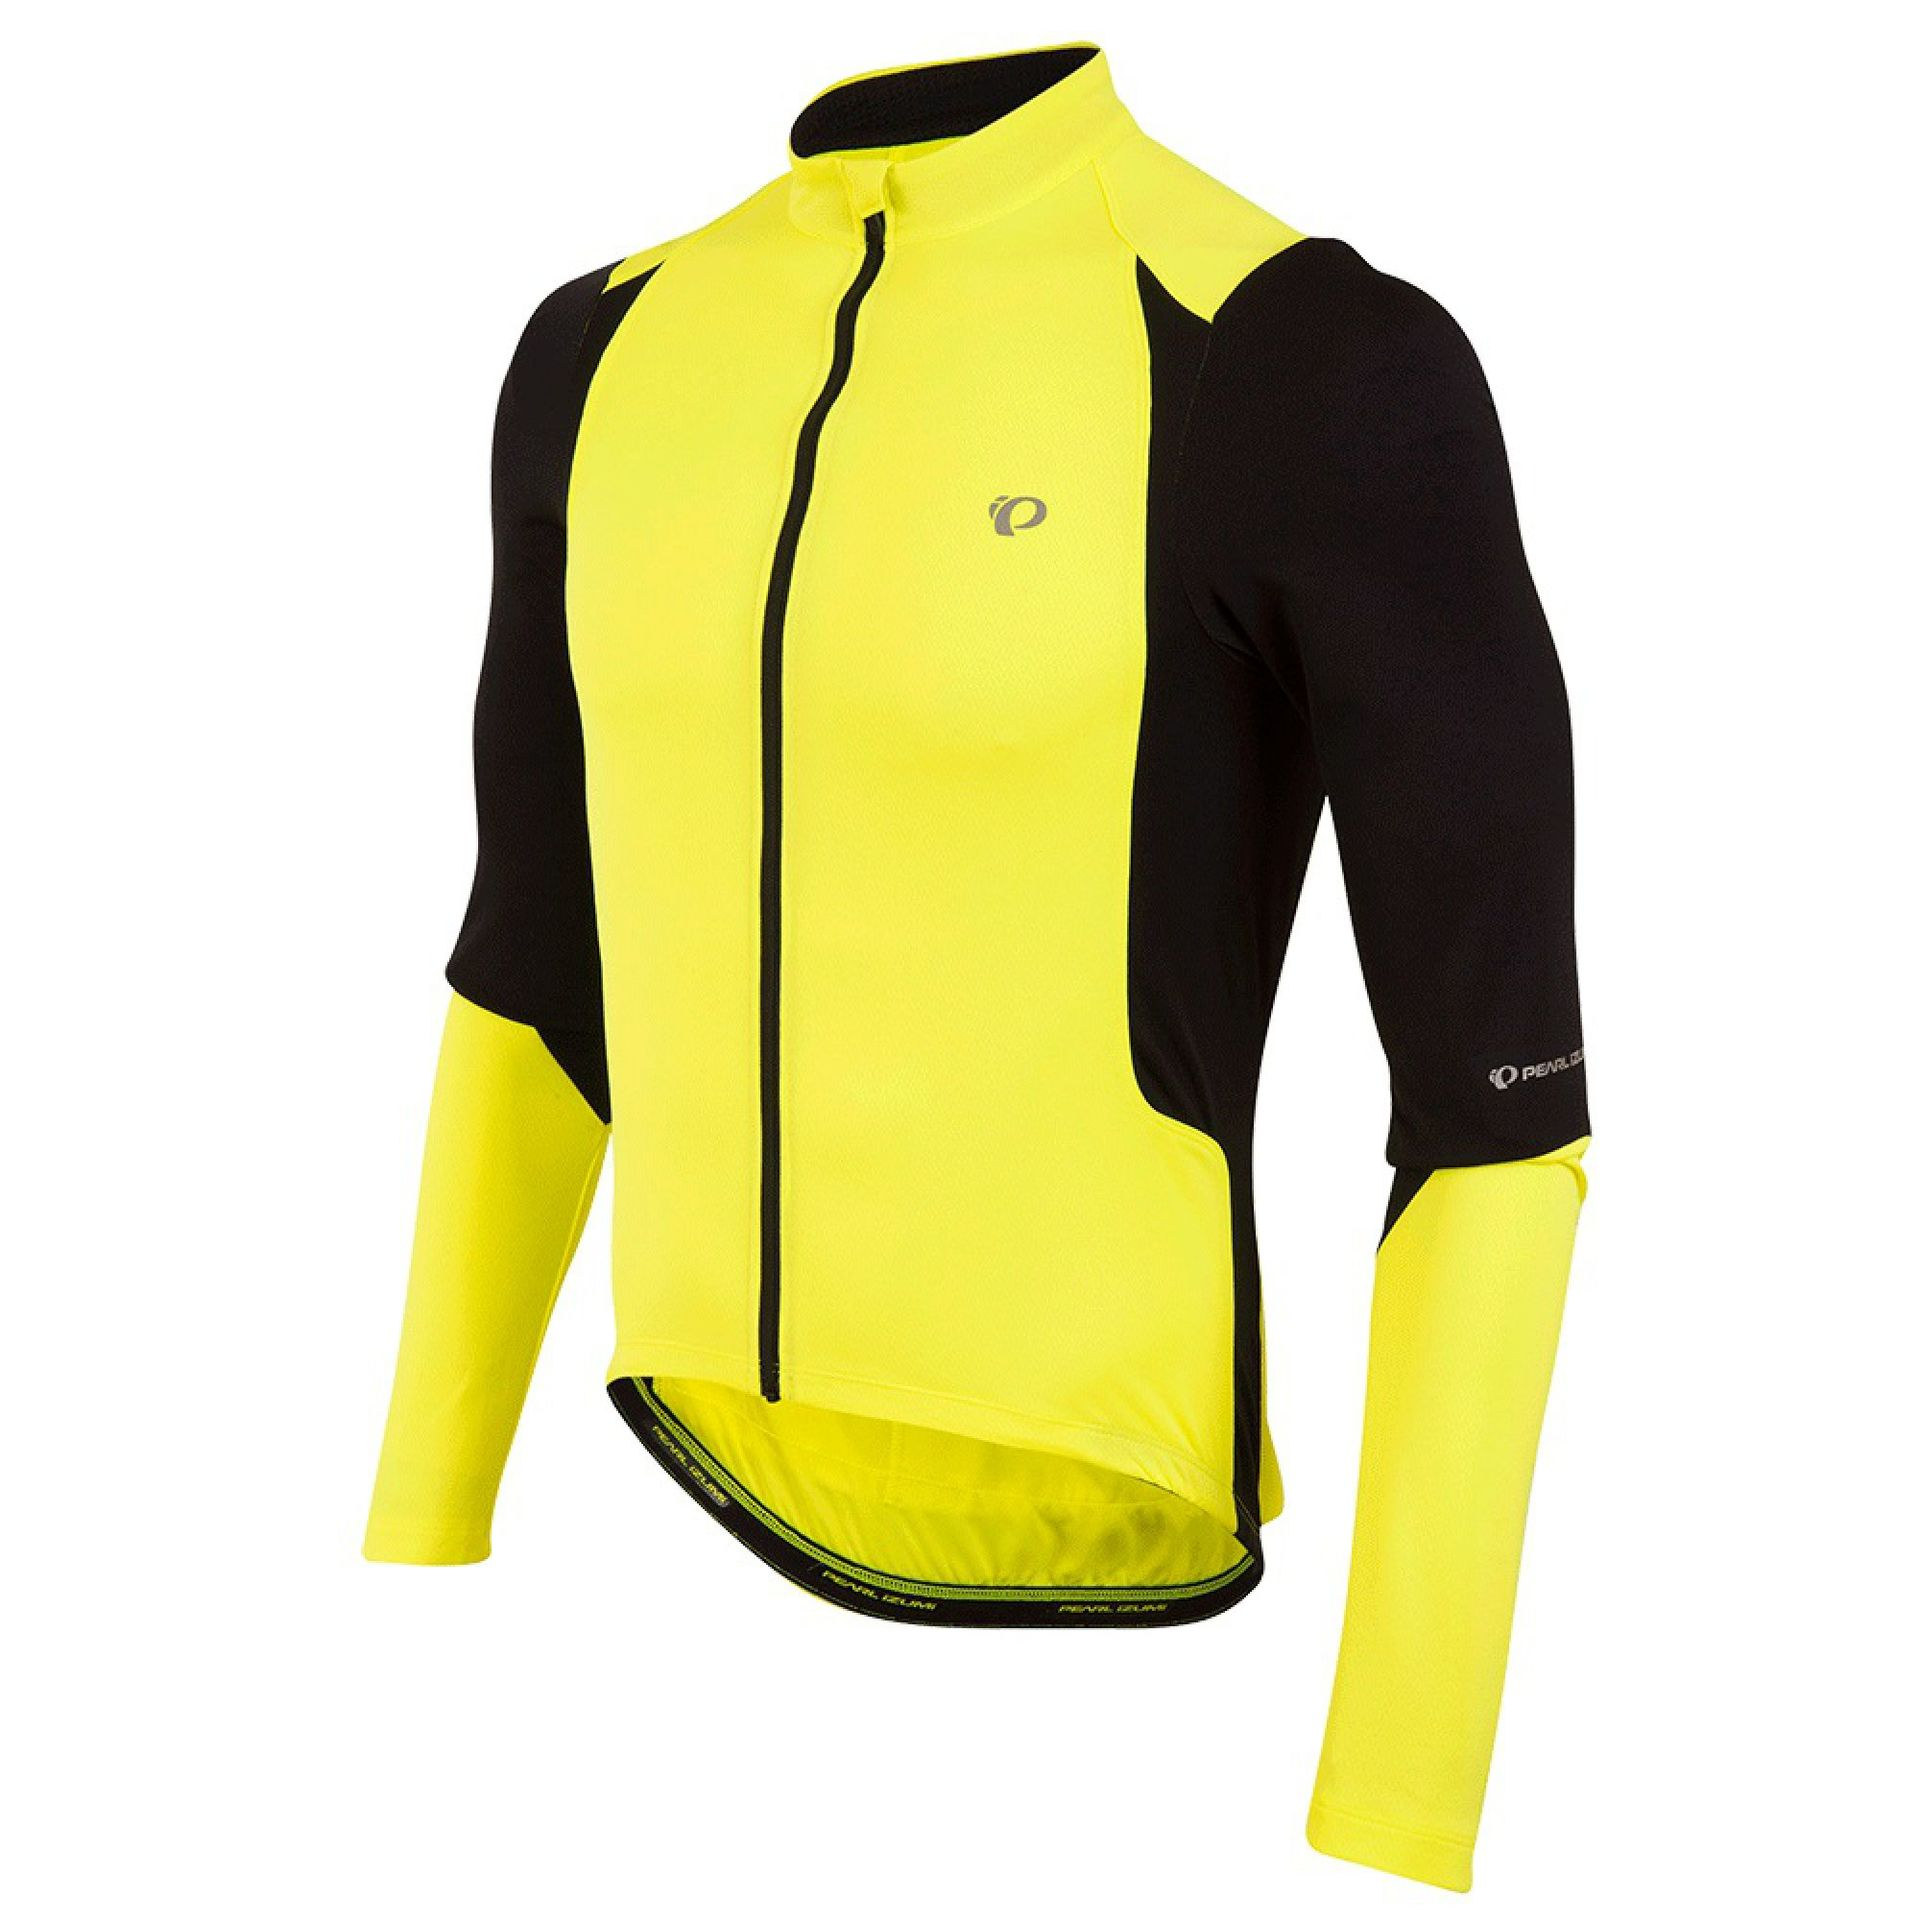 KOSZULKA ROWEROWA PEARL IZUMI SELECT LS SCREAMING YELLOW BLACK 1